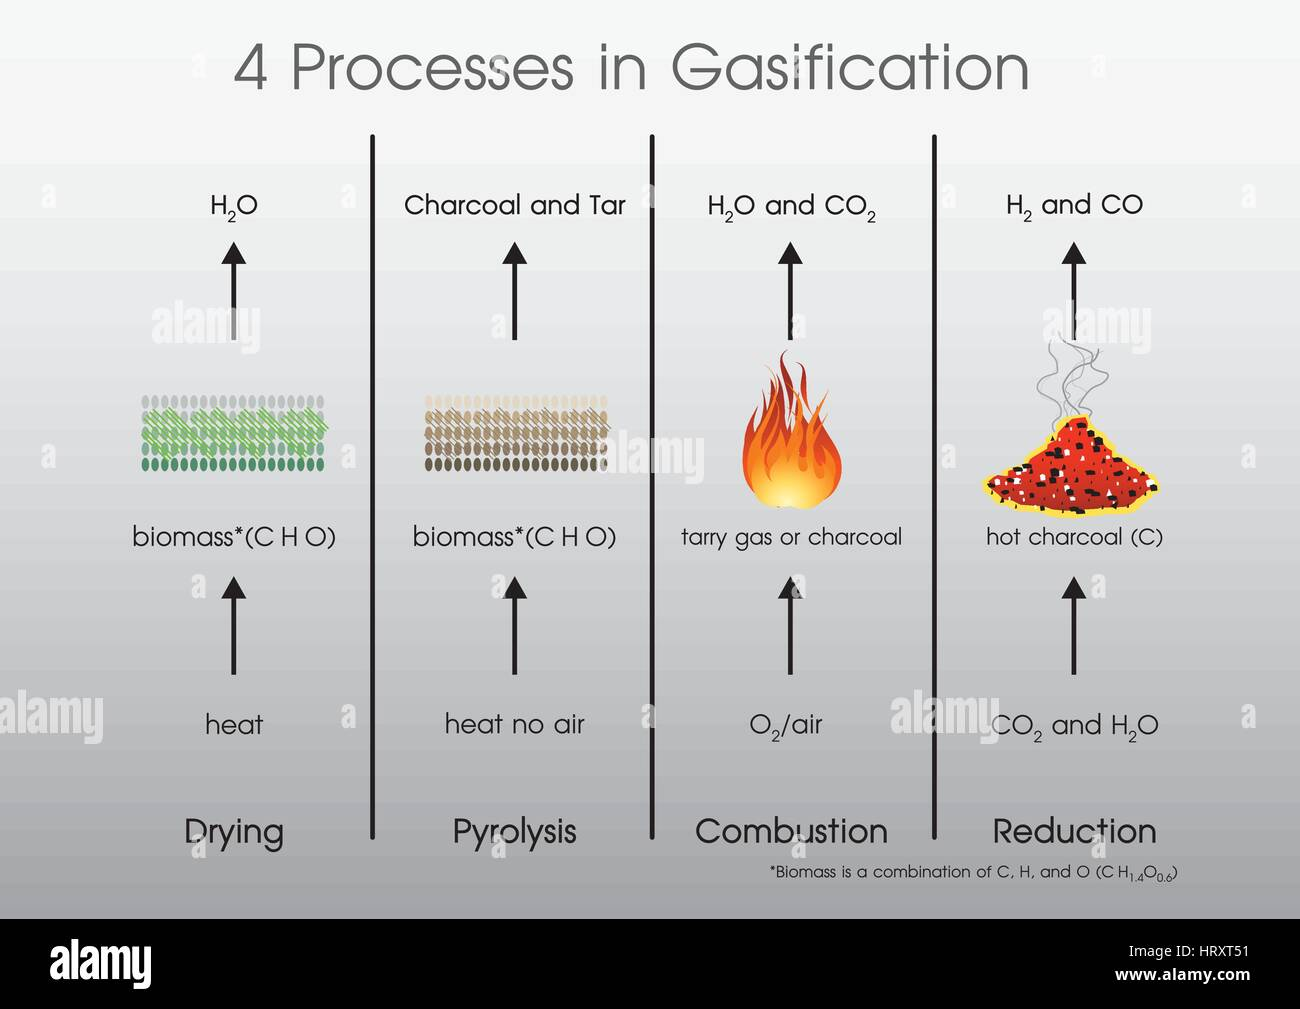 4 processes in Gasification Drying, Pyrolysis, Combustion, Reduction. - Stock Image